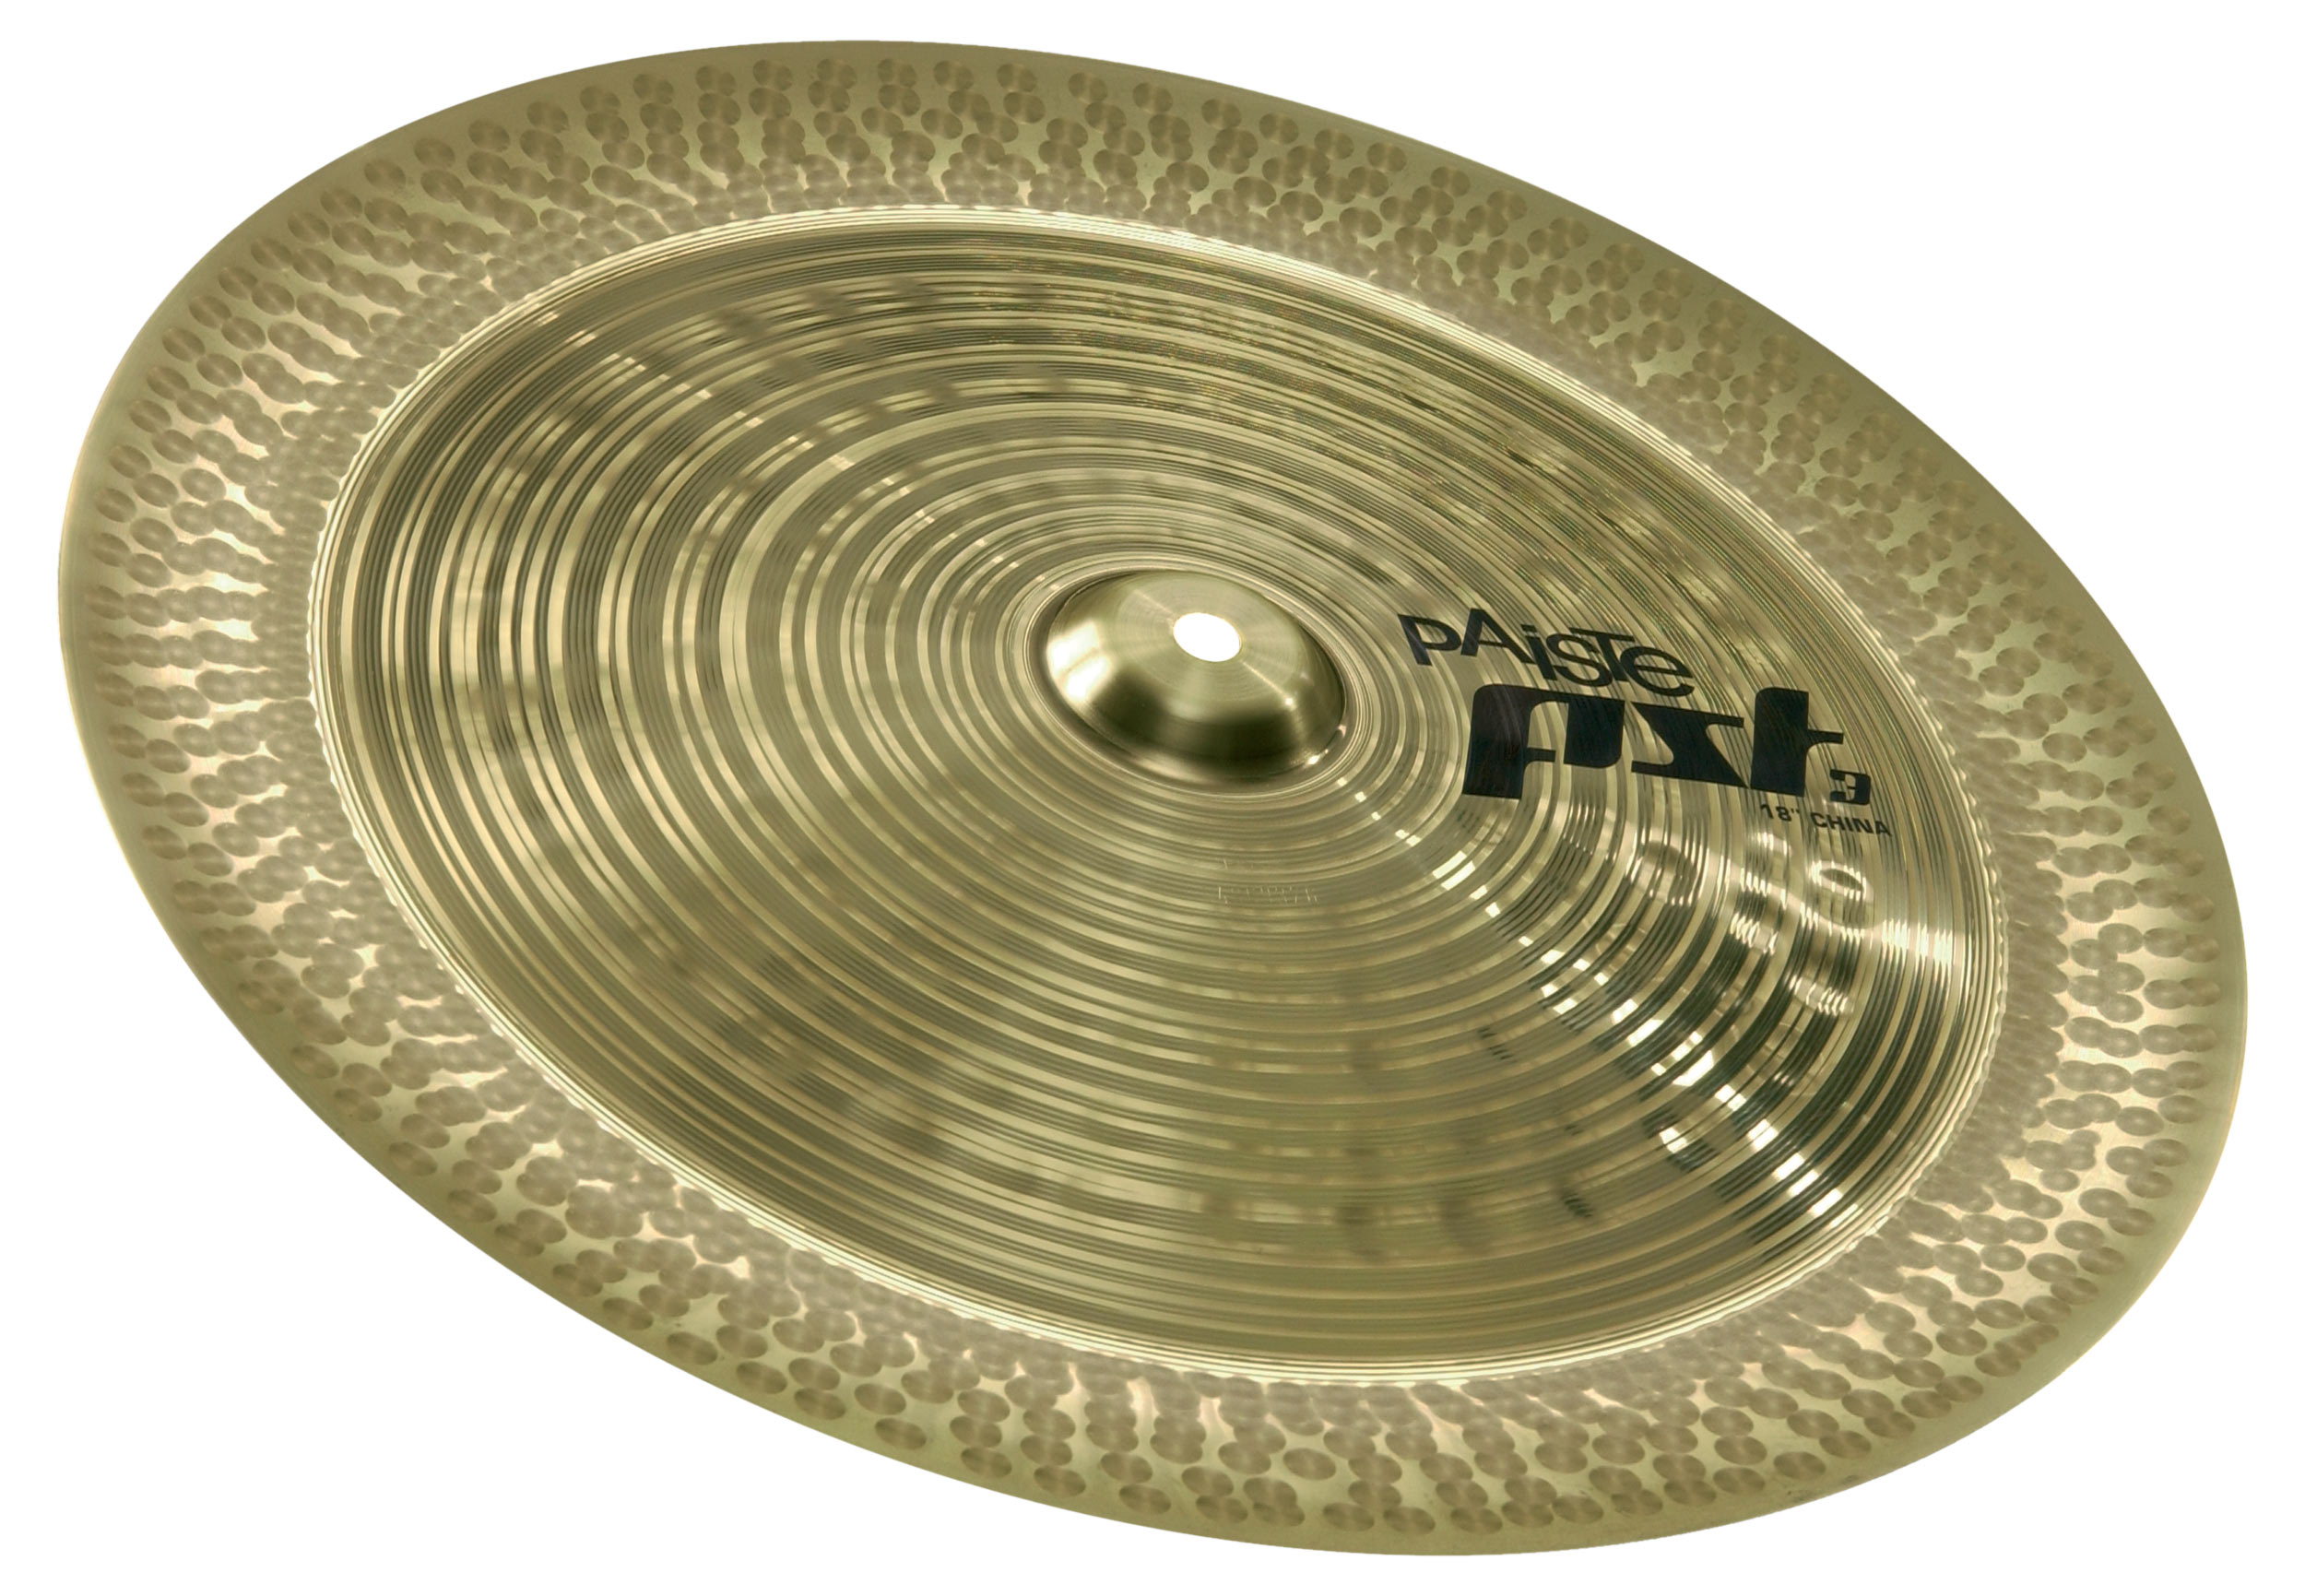 "Paiste 18"" PST 3 China Cymbal"